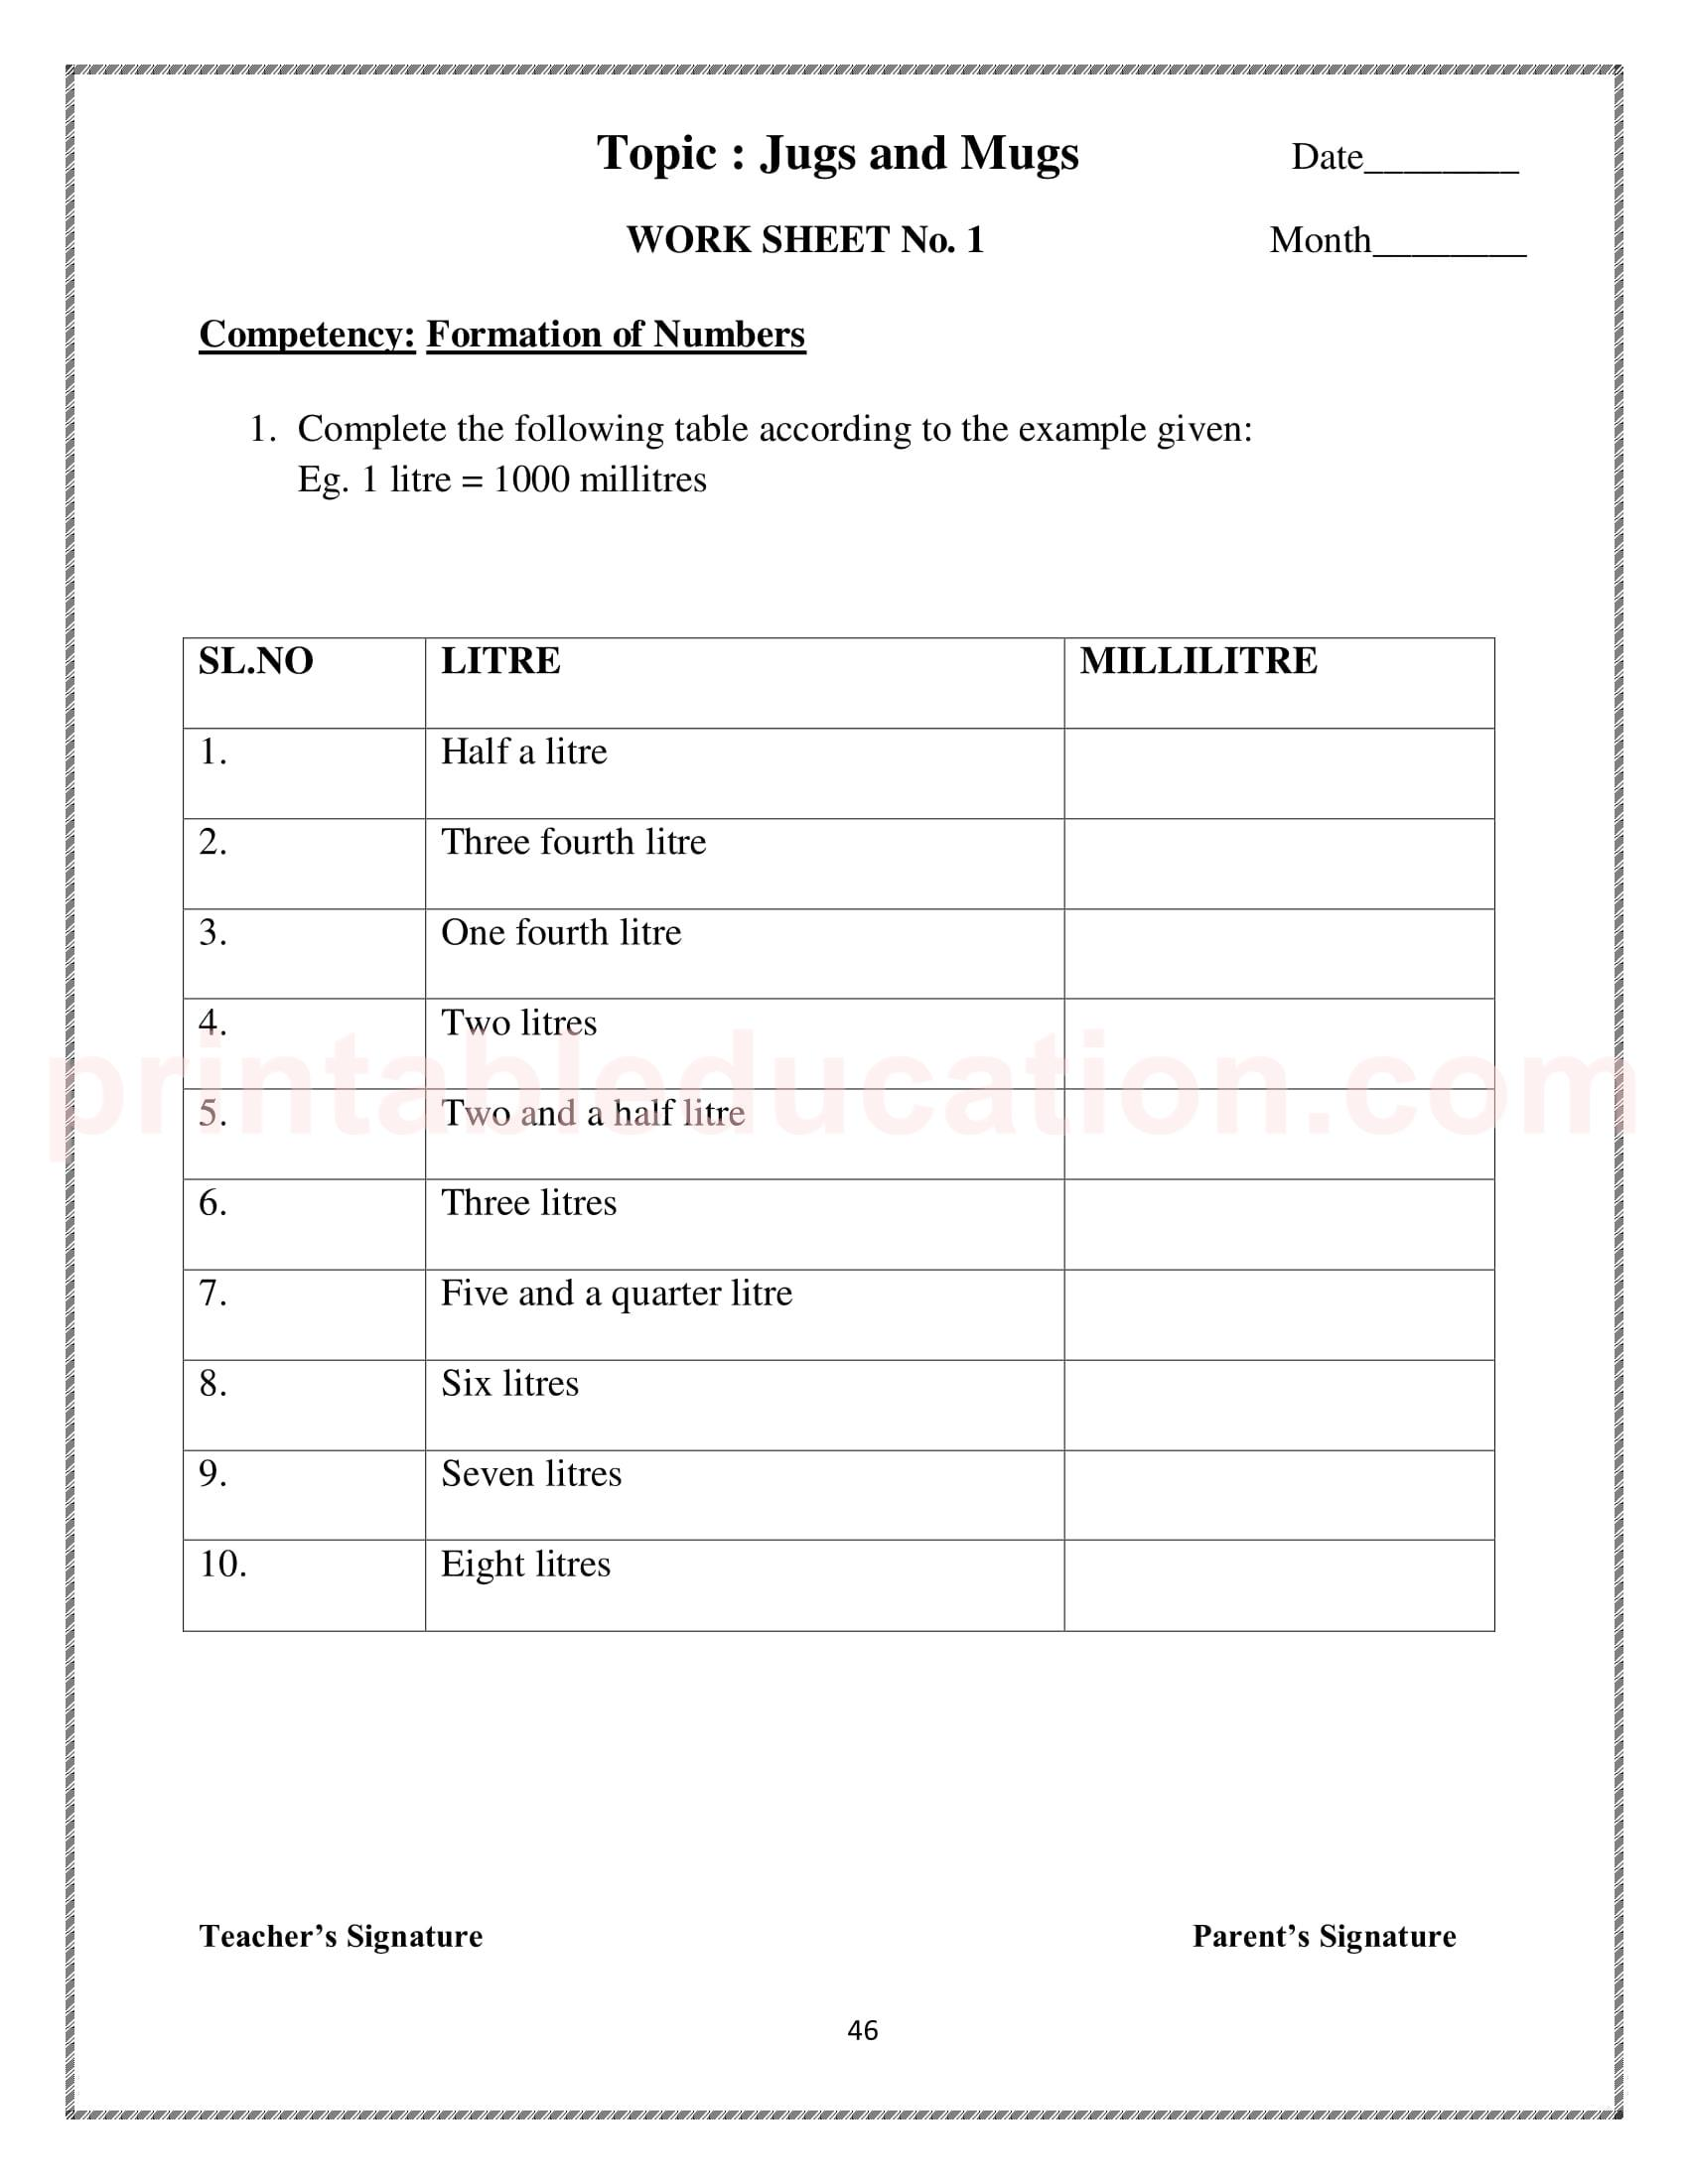 Measurement Worksheet Amp Games For Kids